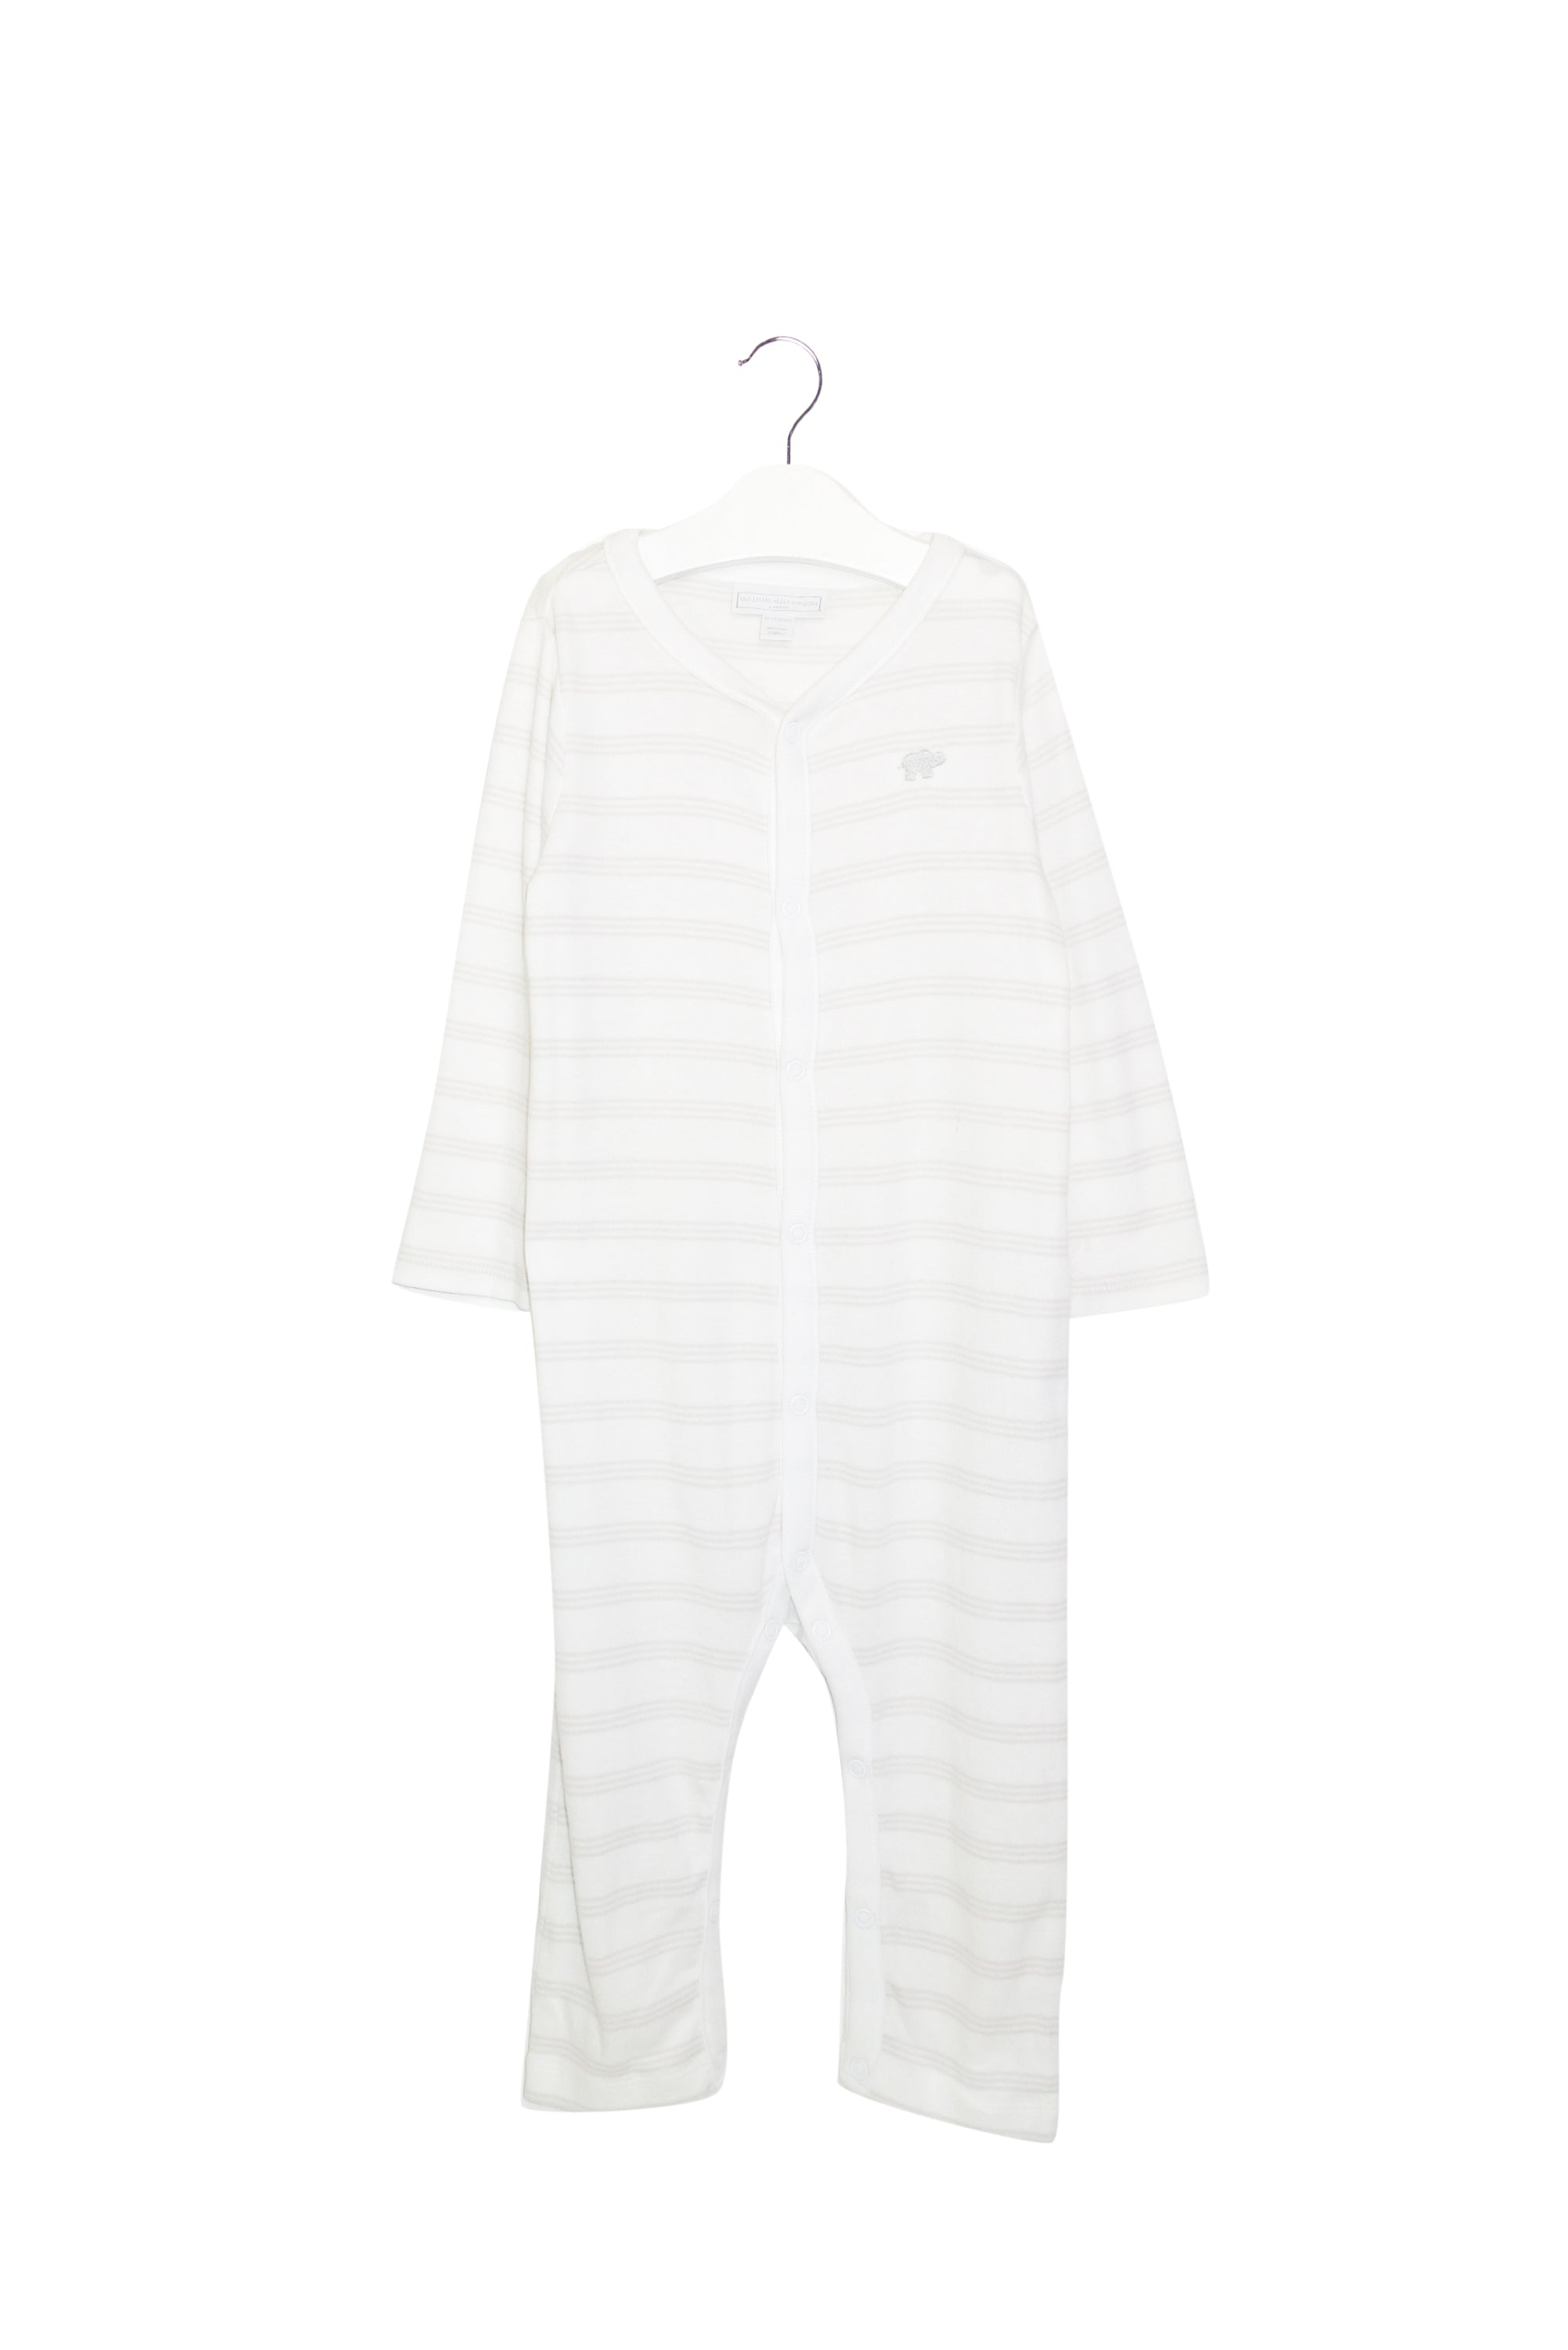 10014150 The Little White Company Baby ~Jumpsuit 18-24M at Retykle